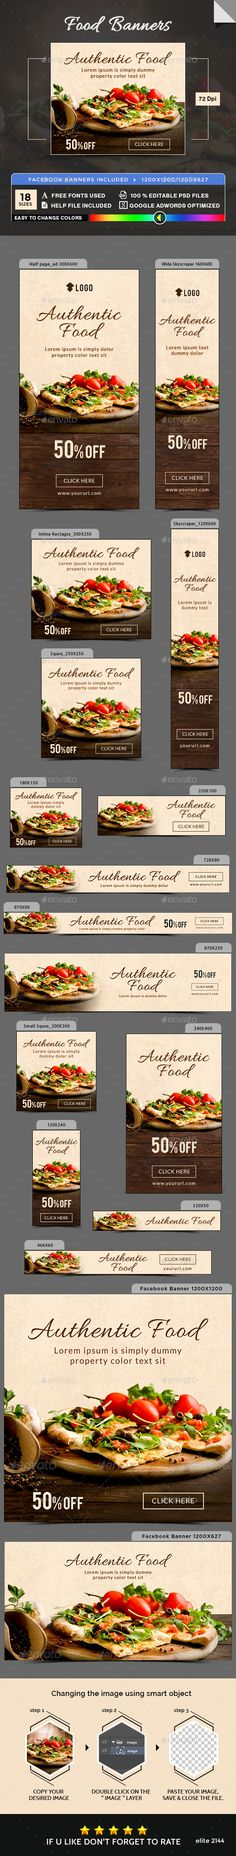 Food Banners — Photoshop PSD #flat design #deal • Available here → https://graphicriver.net/item/food-banners/19489668?ref=pxcr